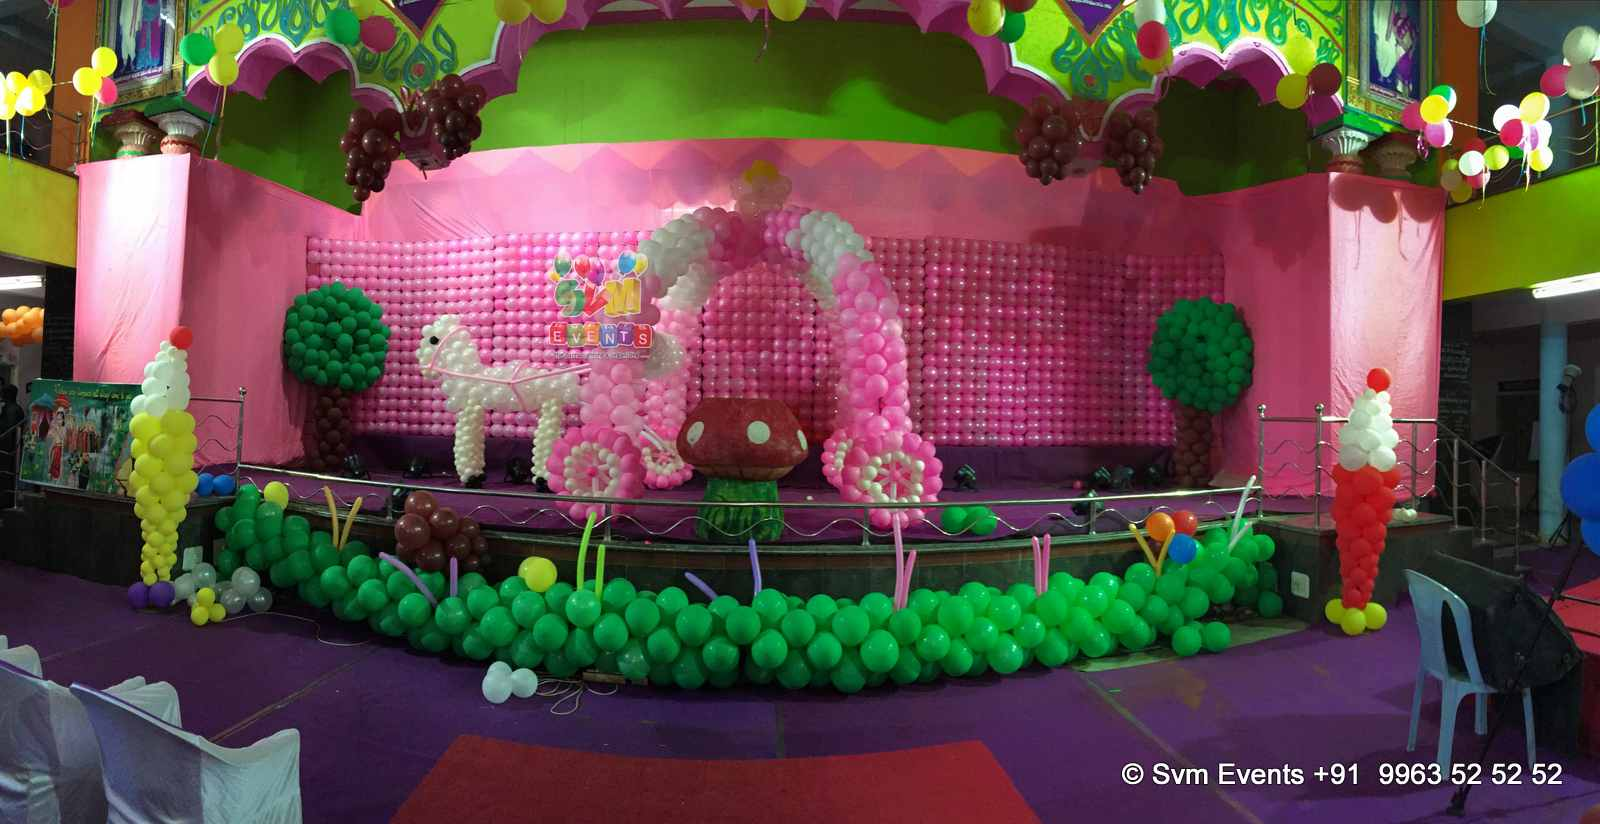 Svm events chariot theme for kids 1st birthday party and for Balloon decoration for 1st birthday party